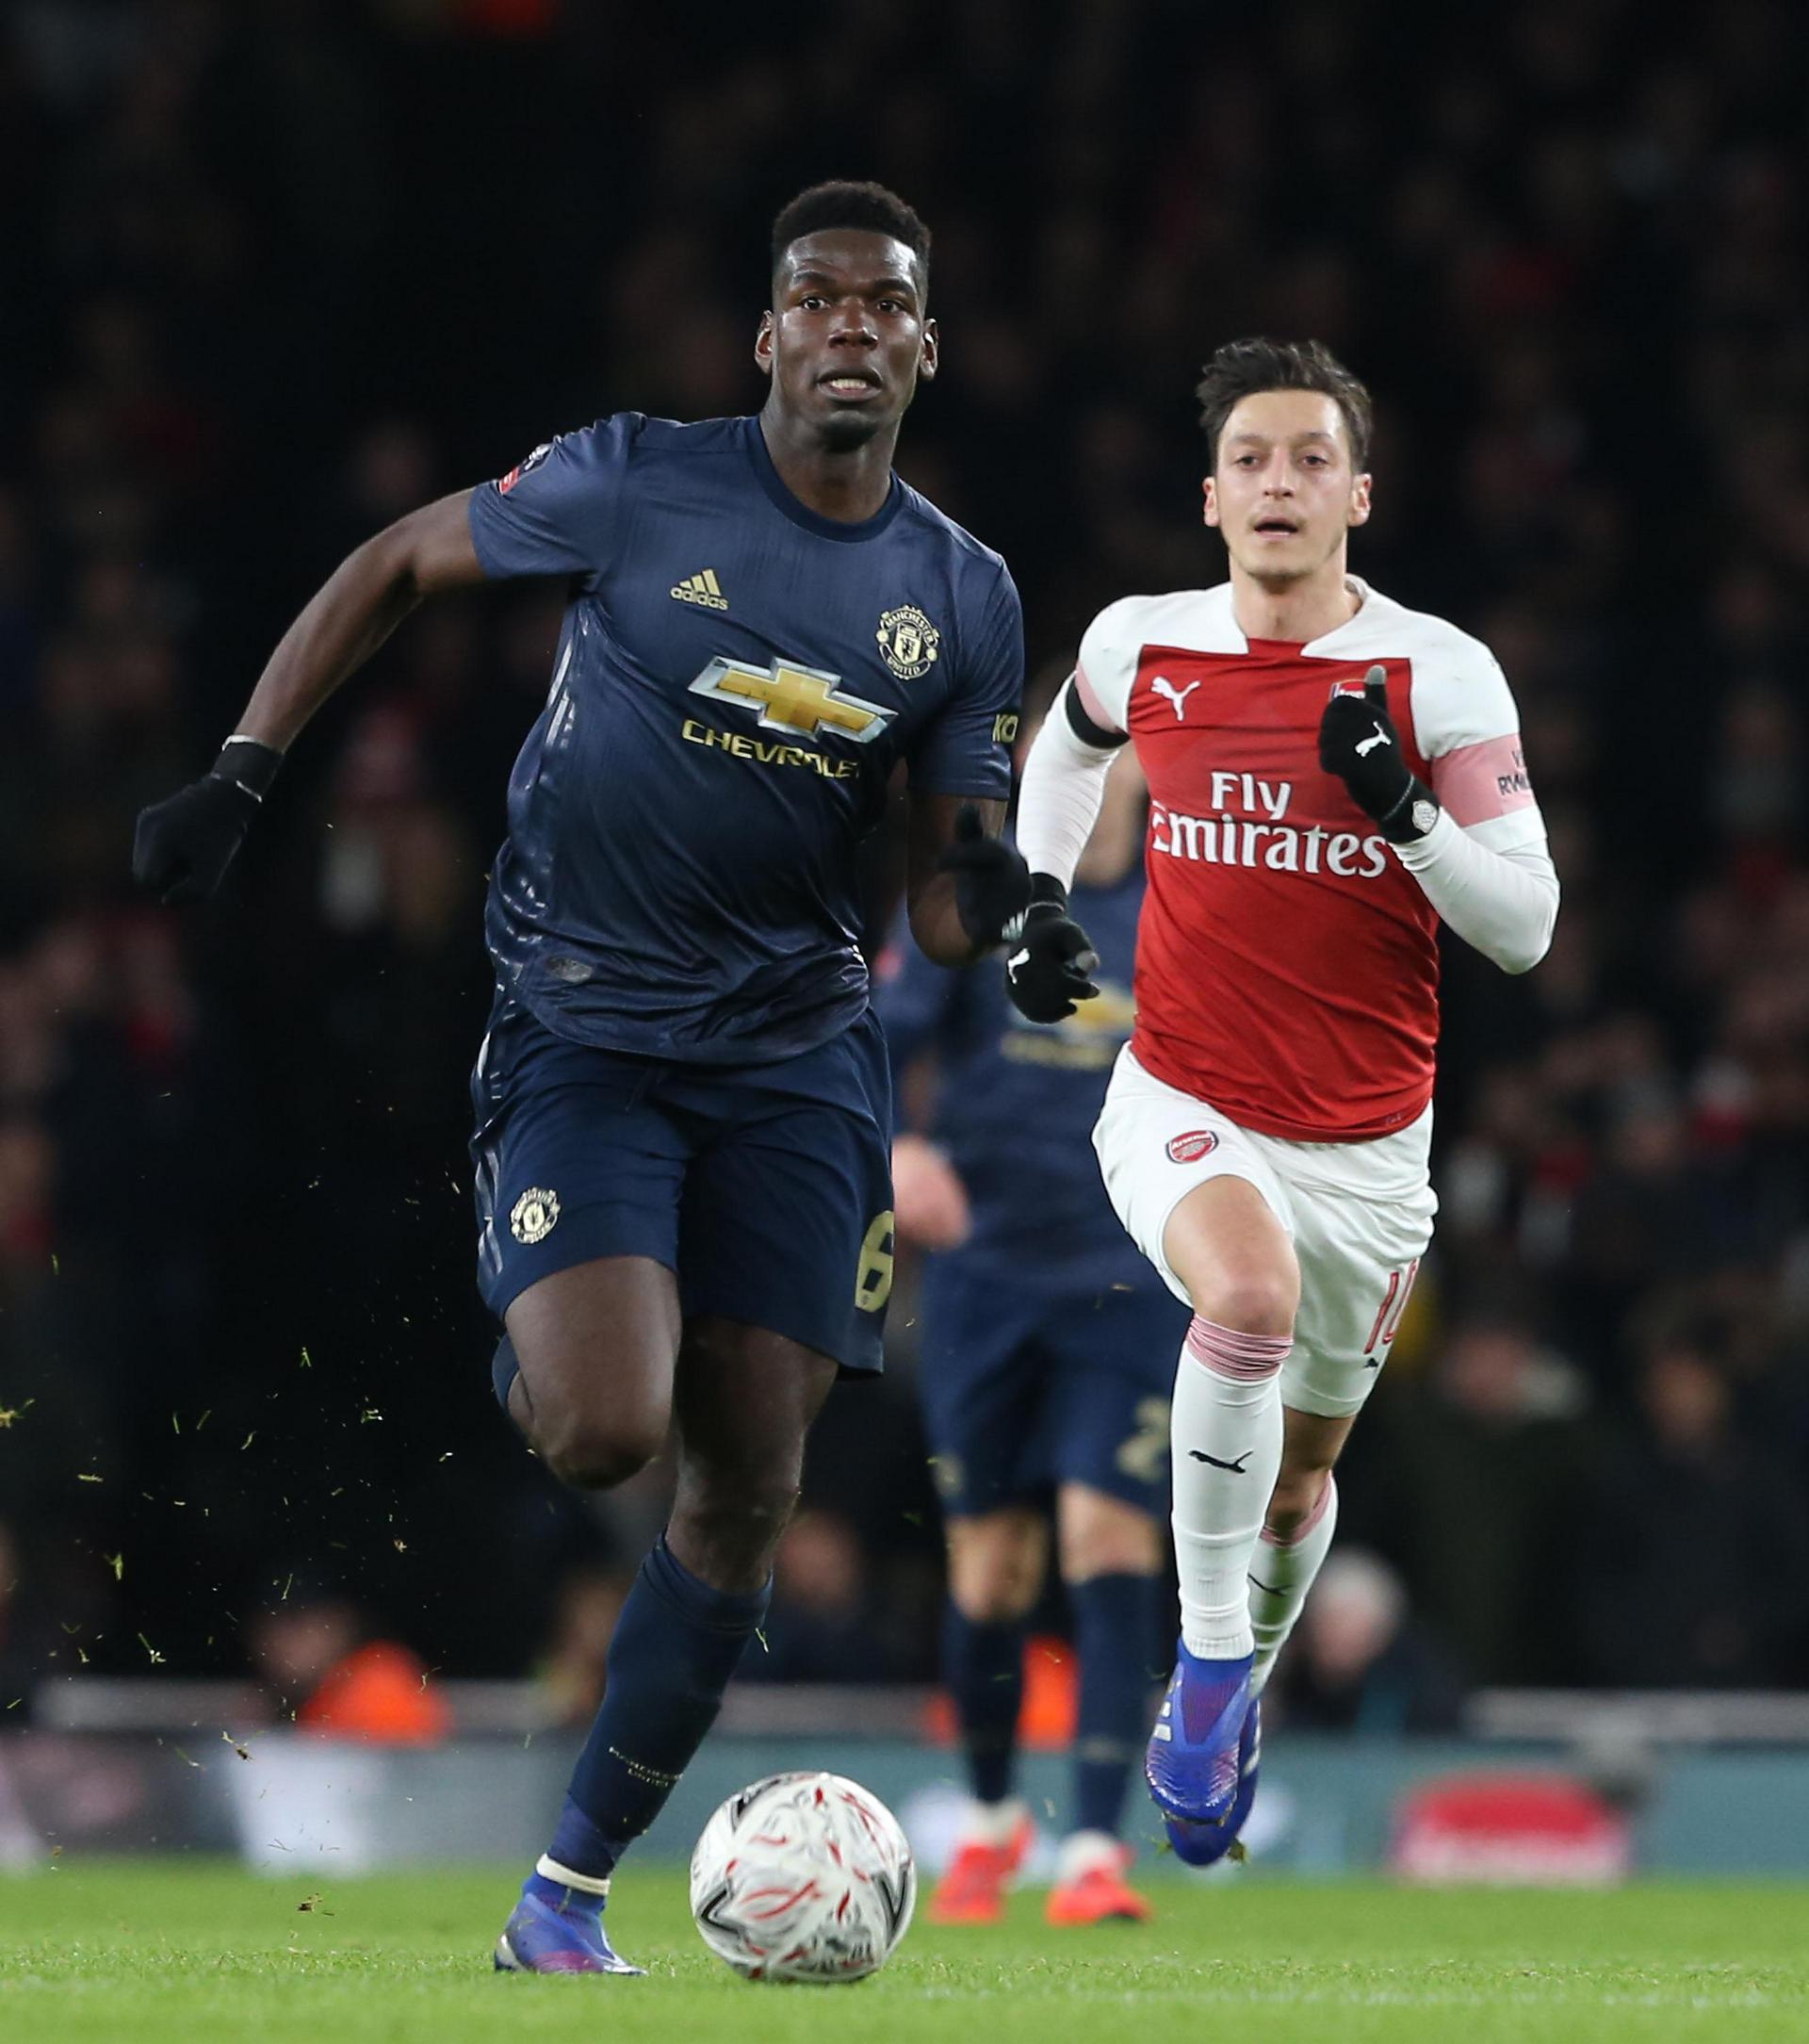 Paul Pogba in action against Arsenal's Mesut Ozil